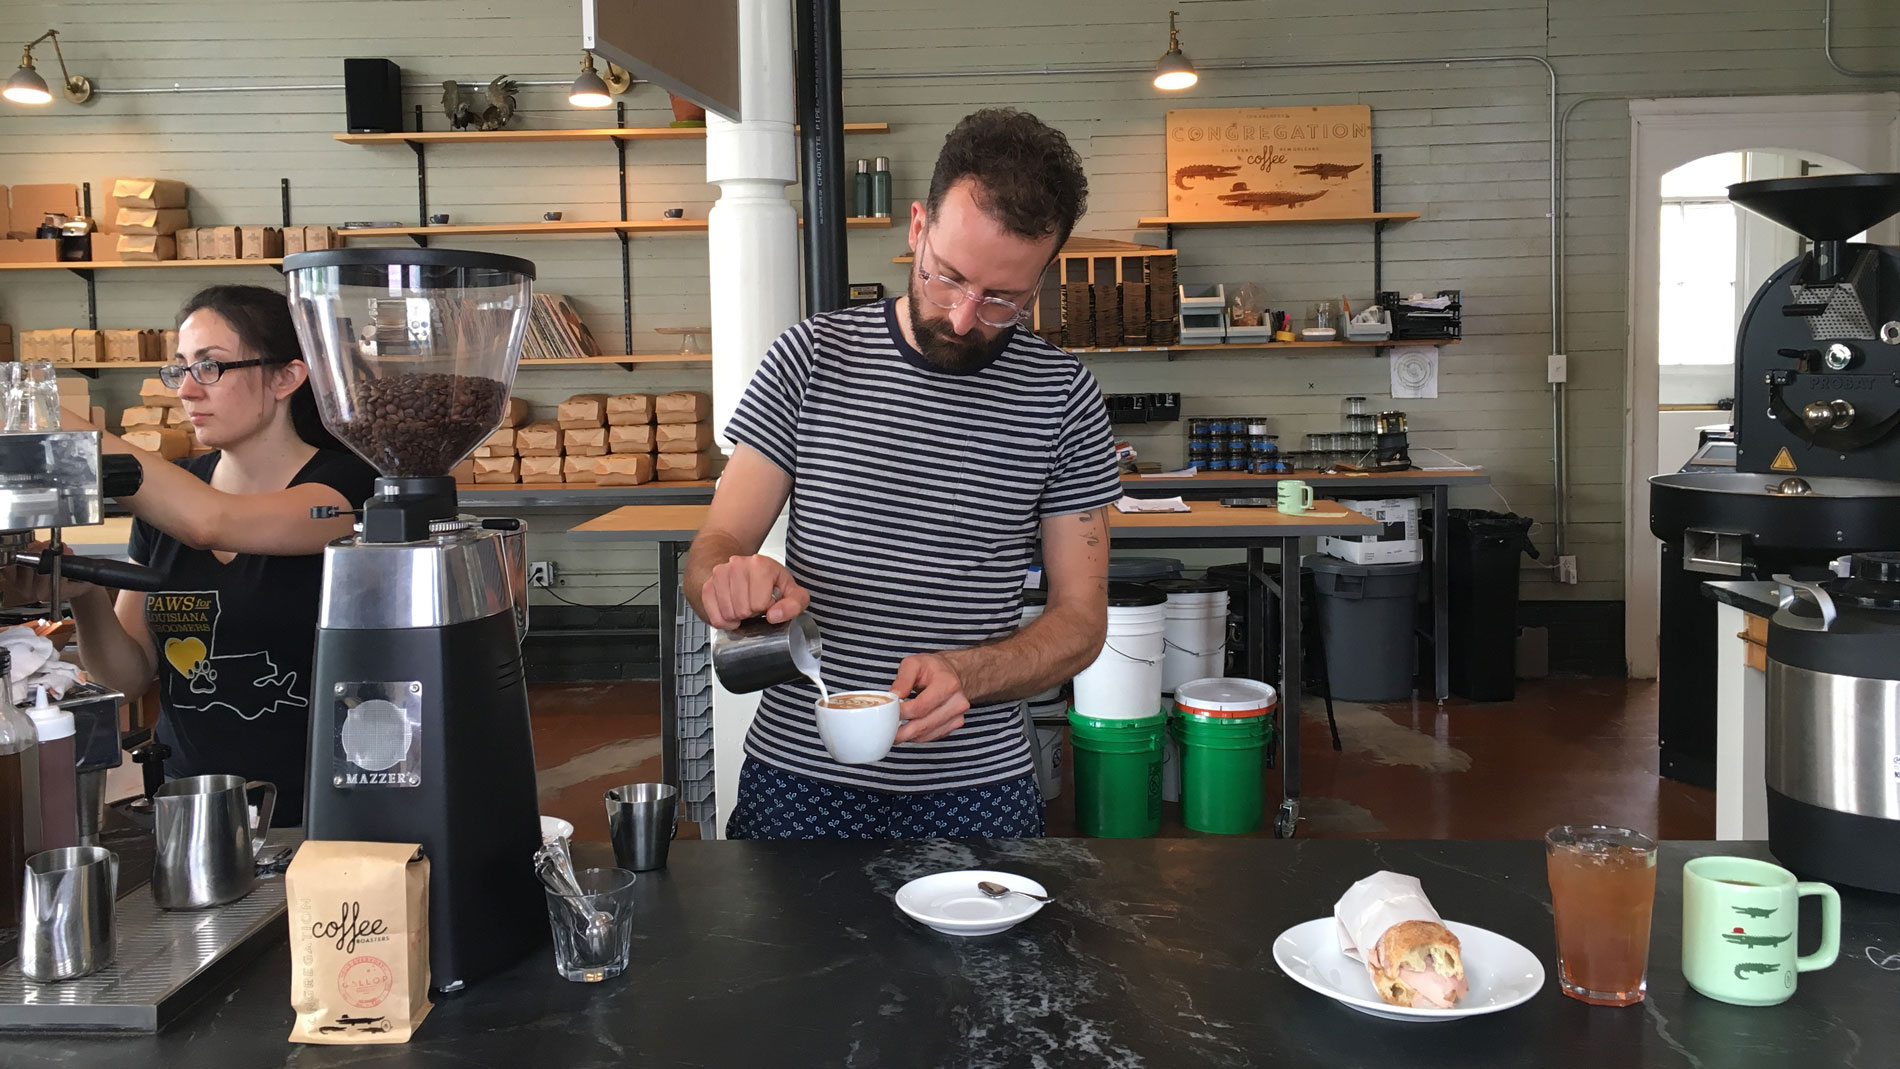 Congregation Coffee Roasters